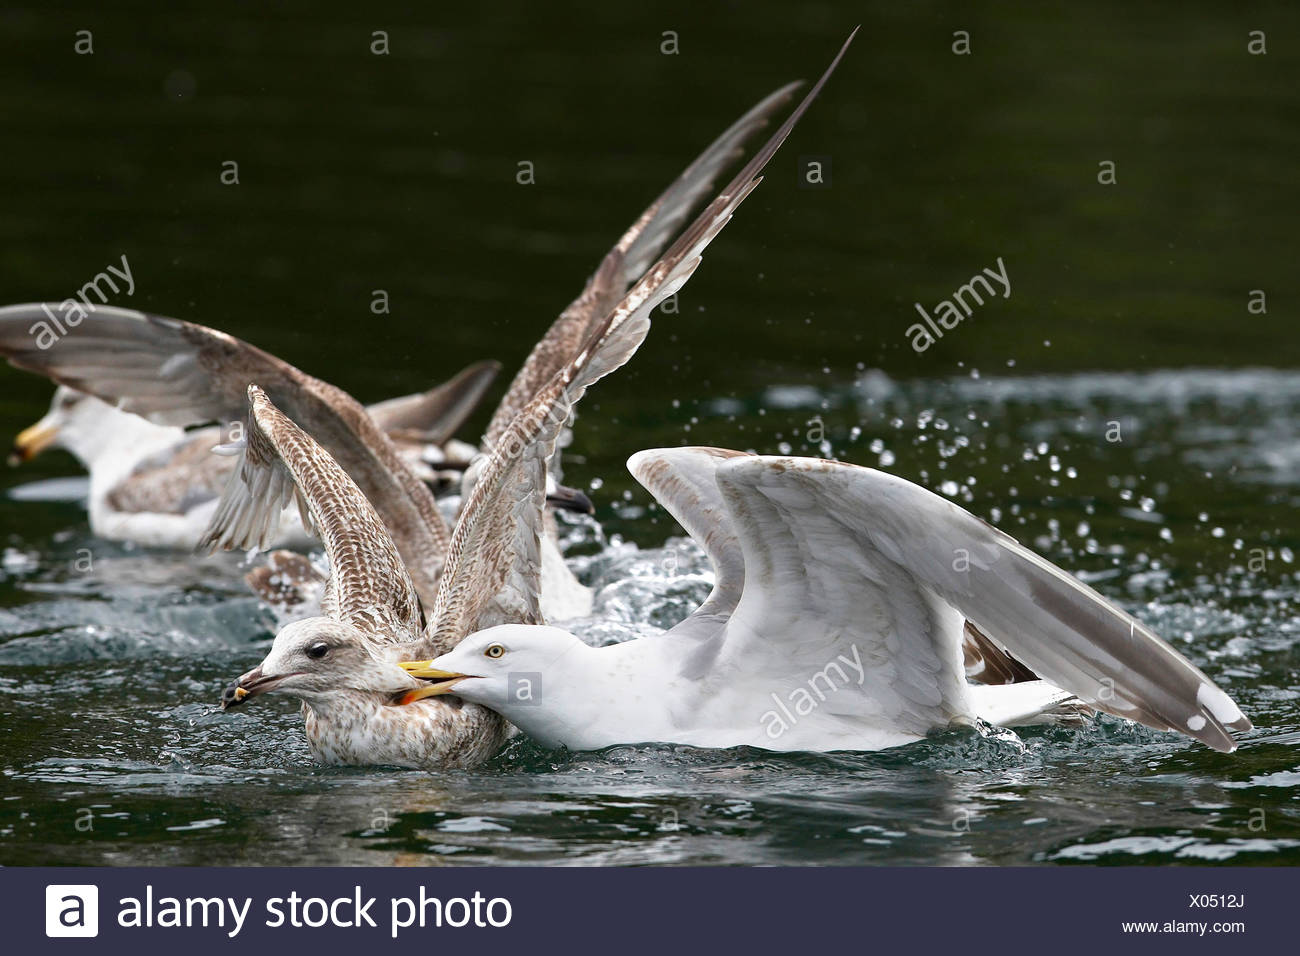 herring gull (Larus argentatus), two young birds fighting, Norway, Trondelag, Flatanger, Lauvsnes - Stock Image